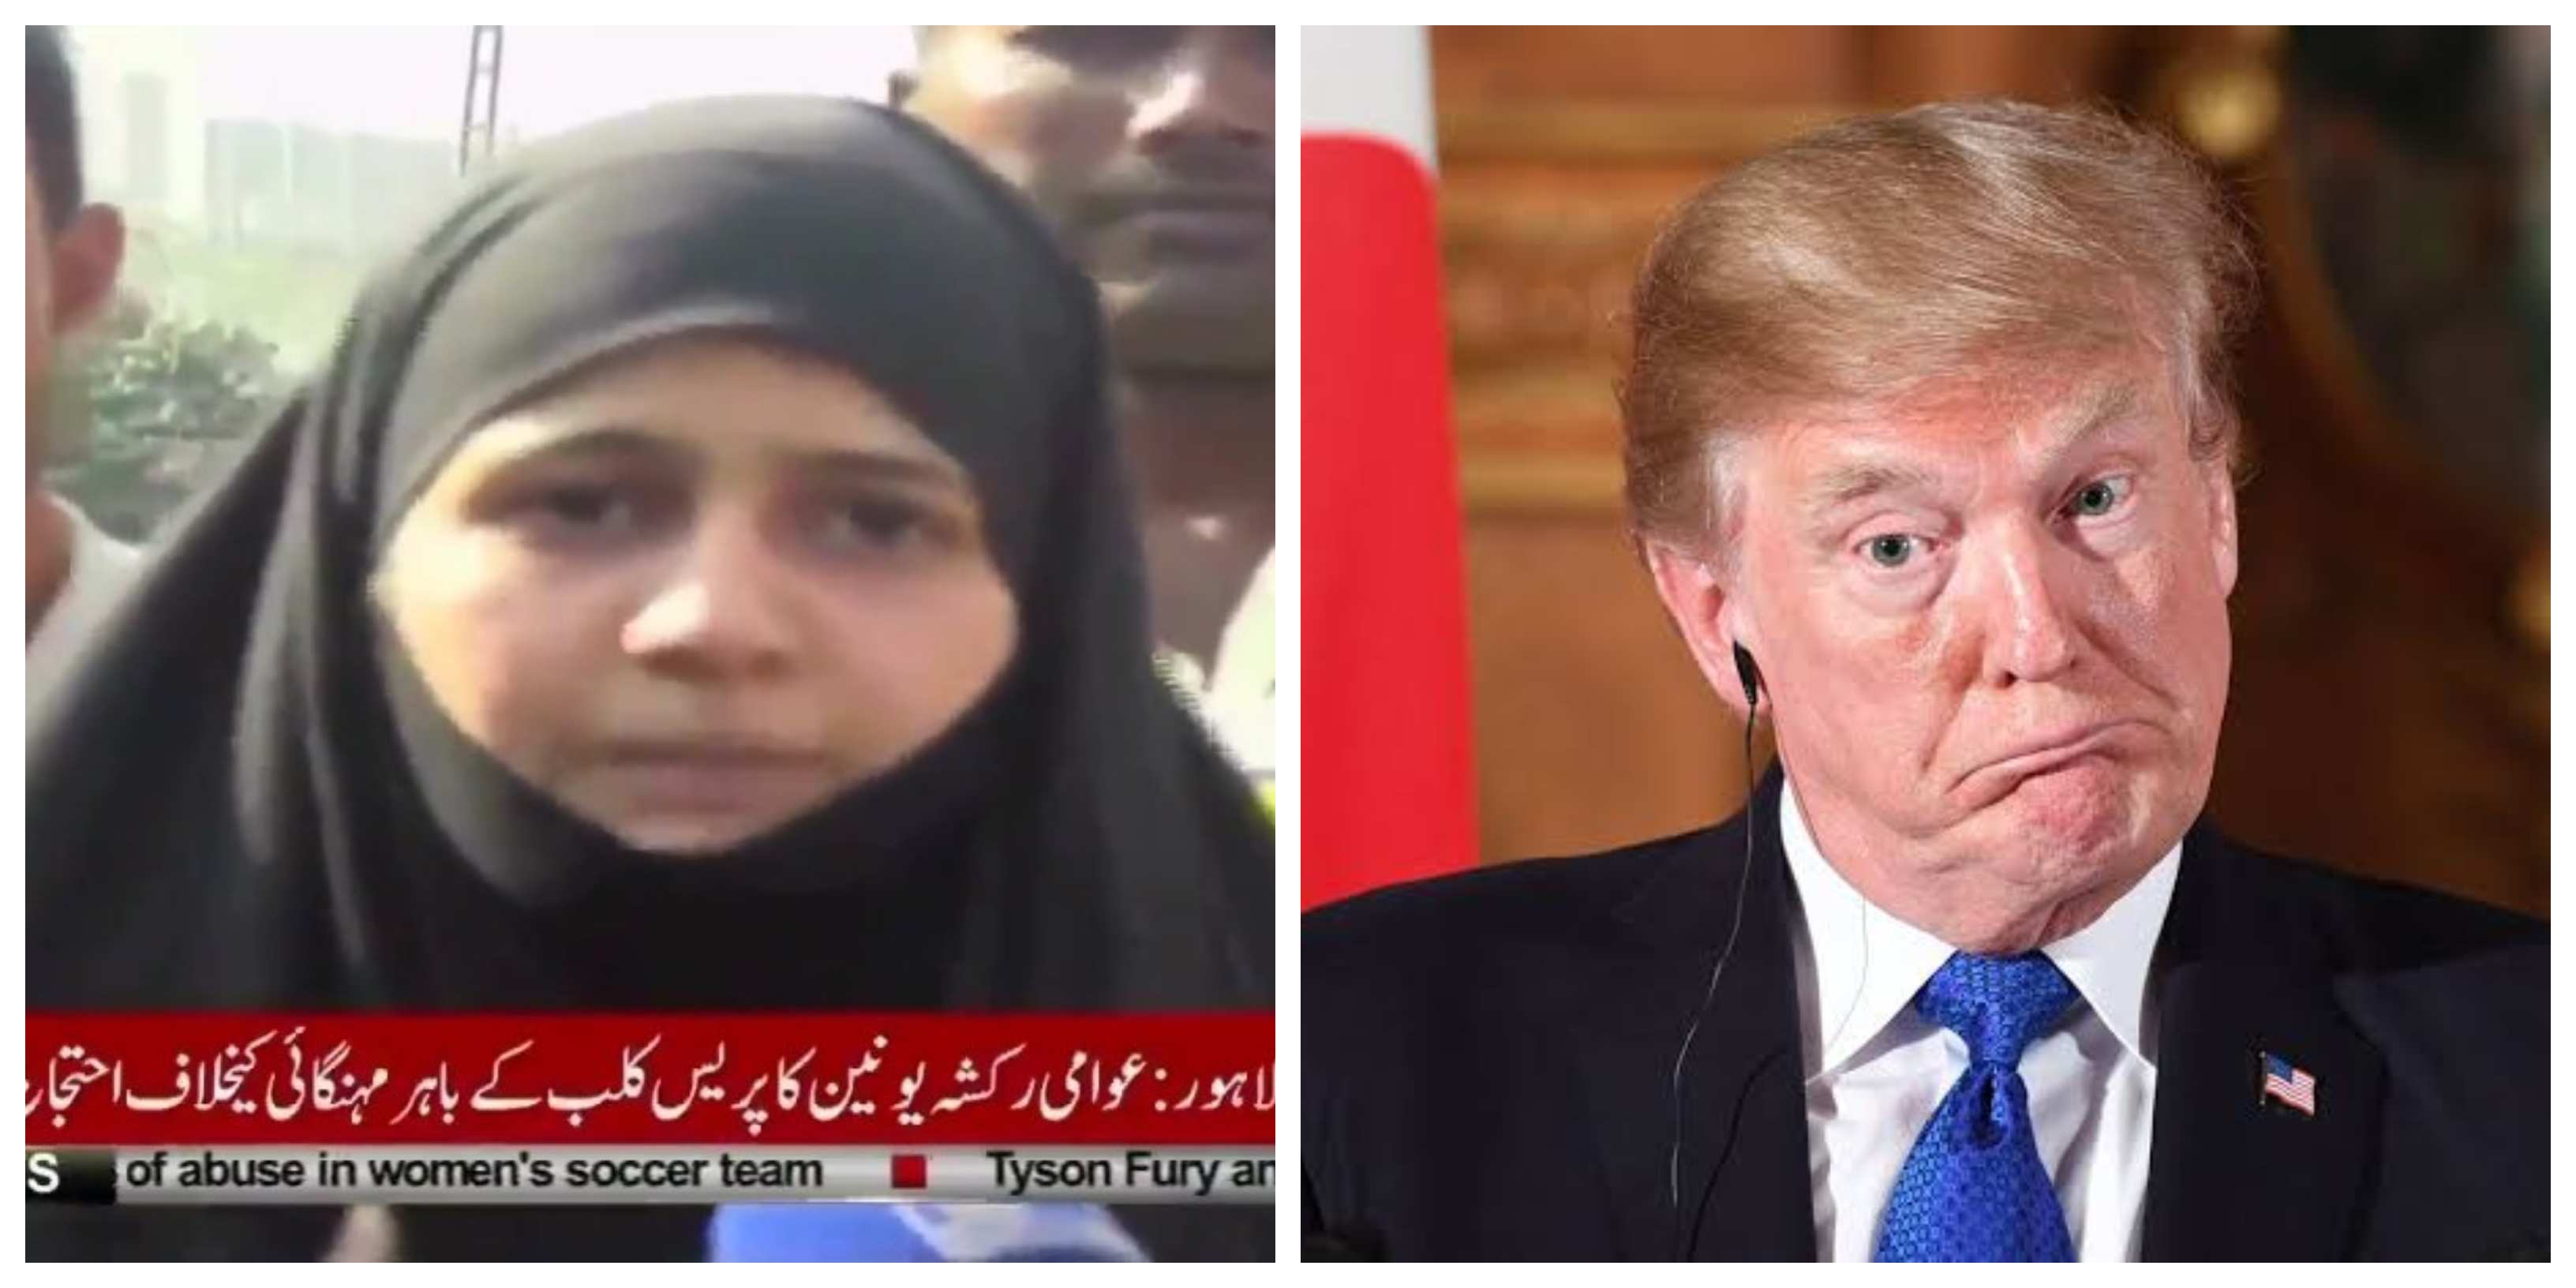 Have a look over new Pakistani tantrum, a girl Amara claims Donald Trump her father